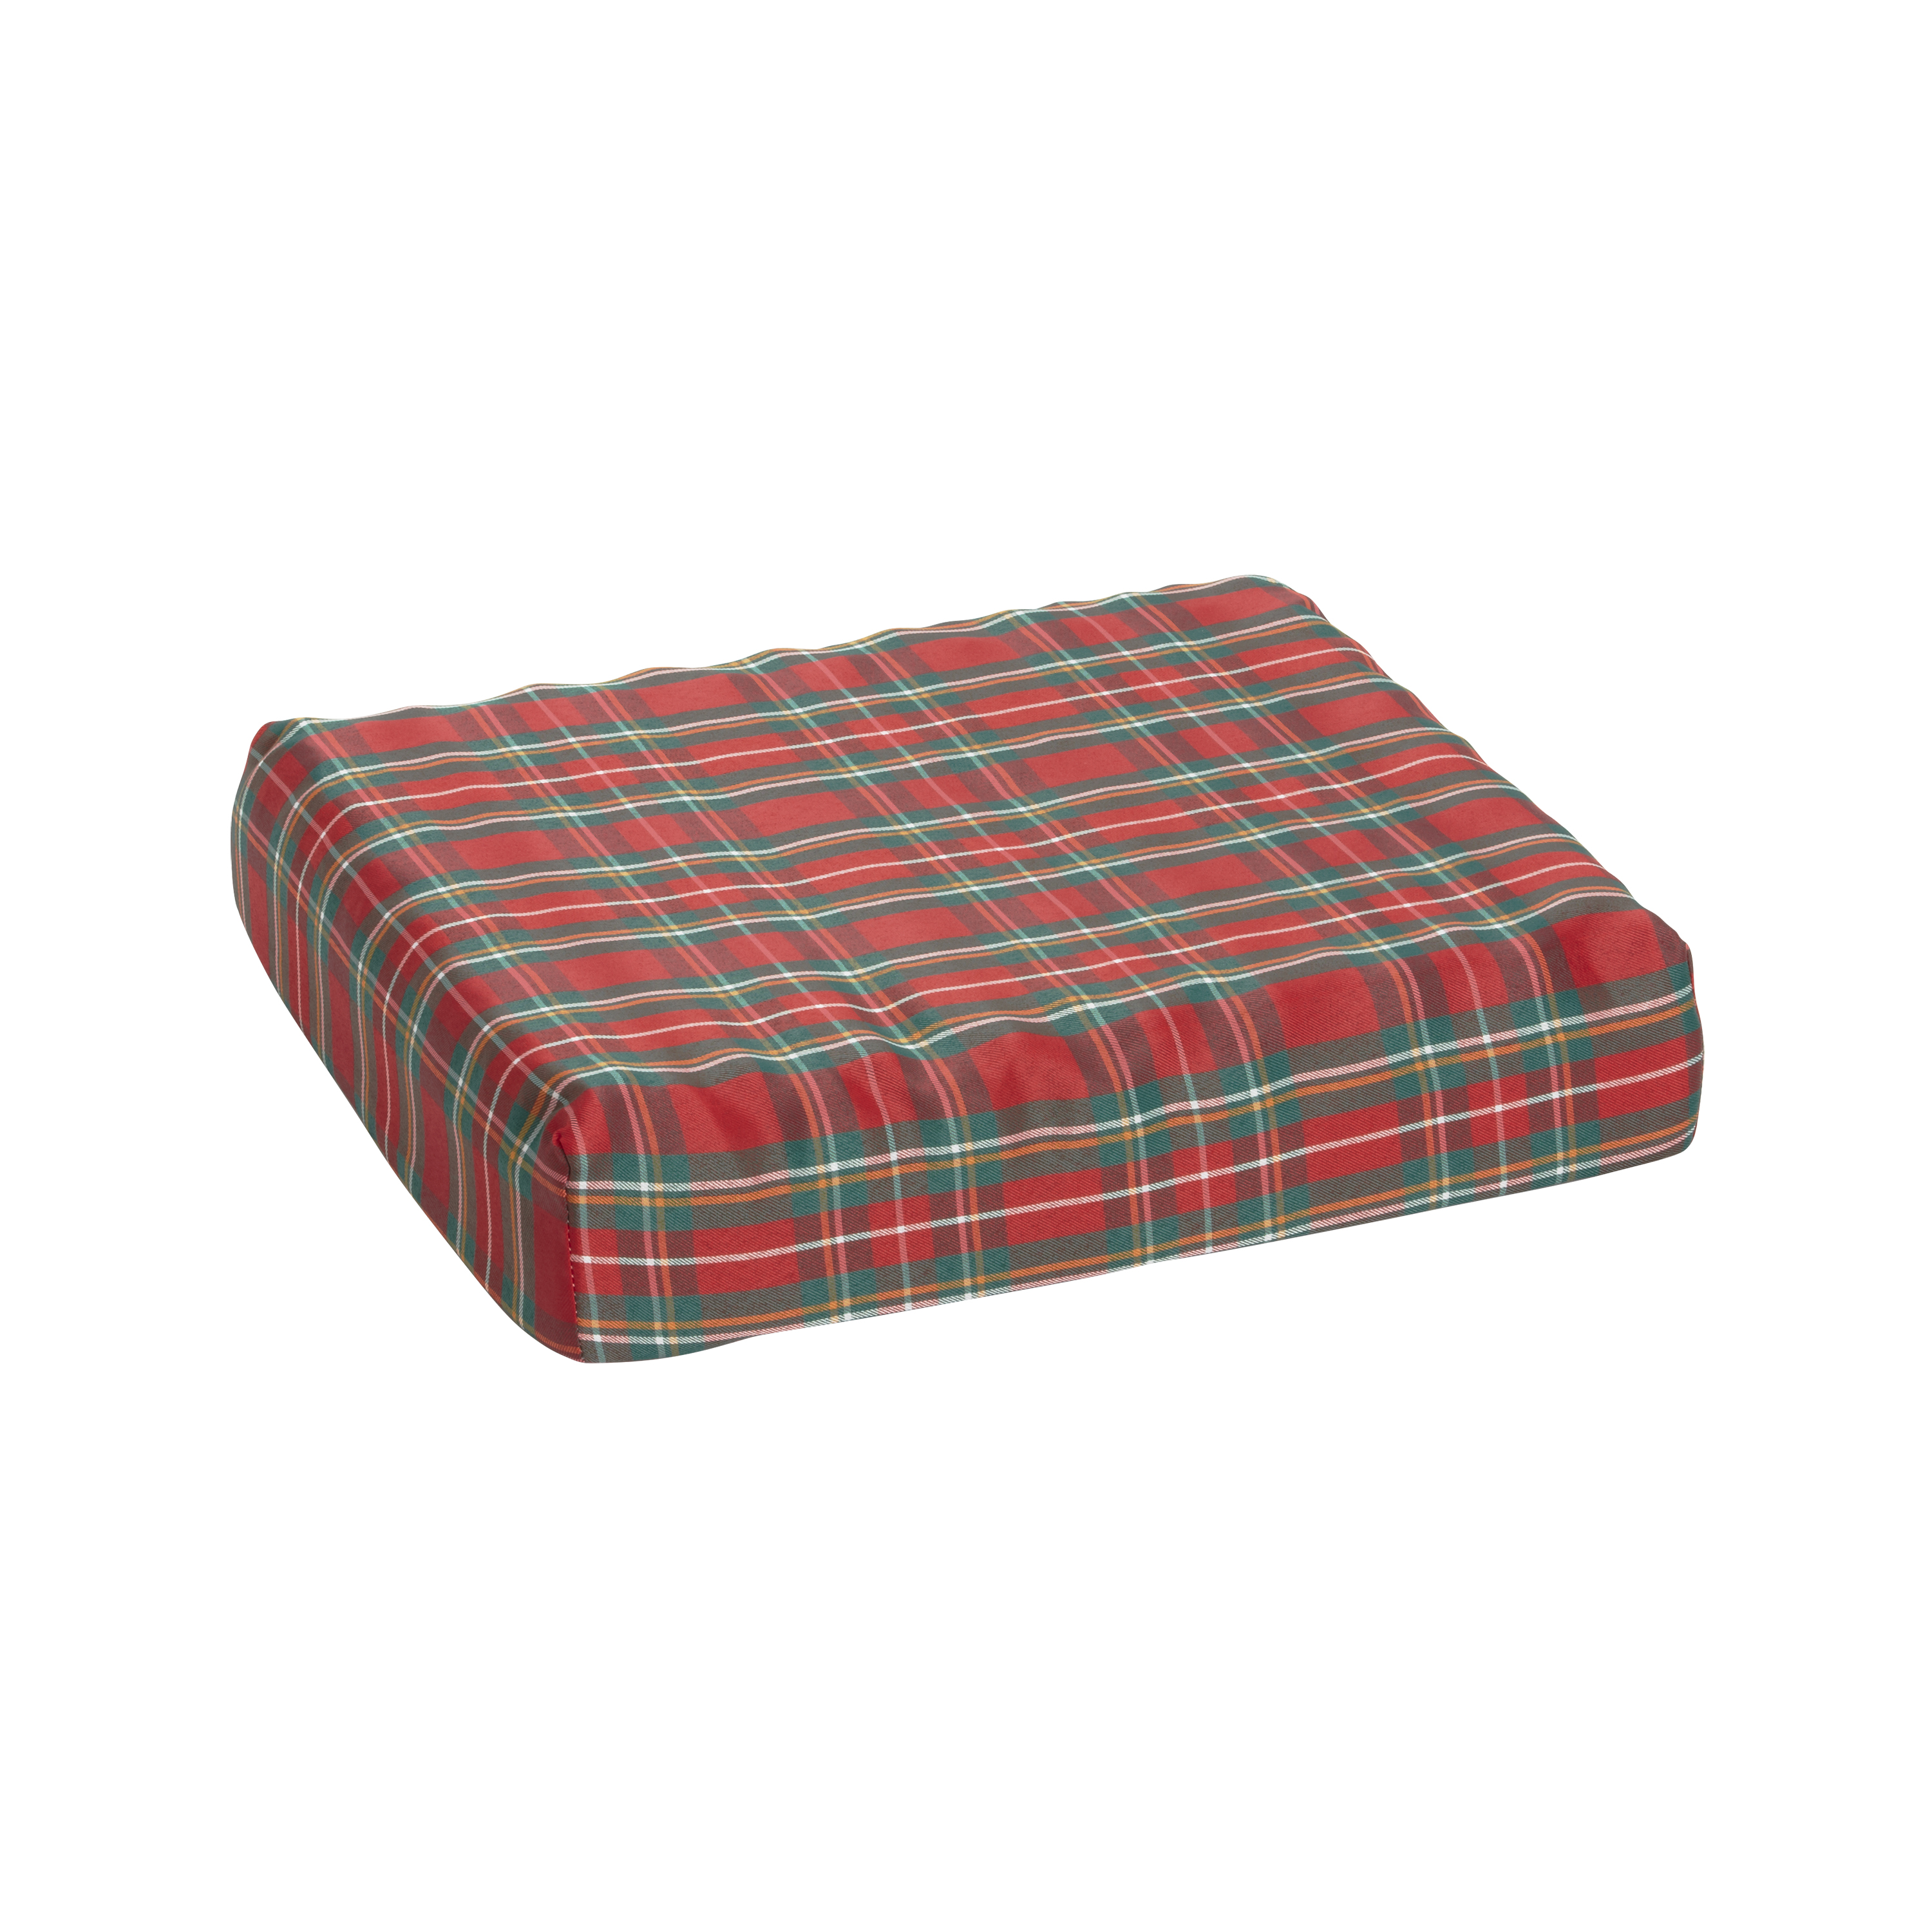 DMI Convoluted Foam Chair Pads, Seat with Plaid Cover, 16 x 18 x 4